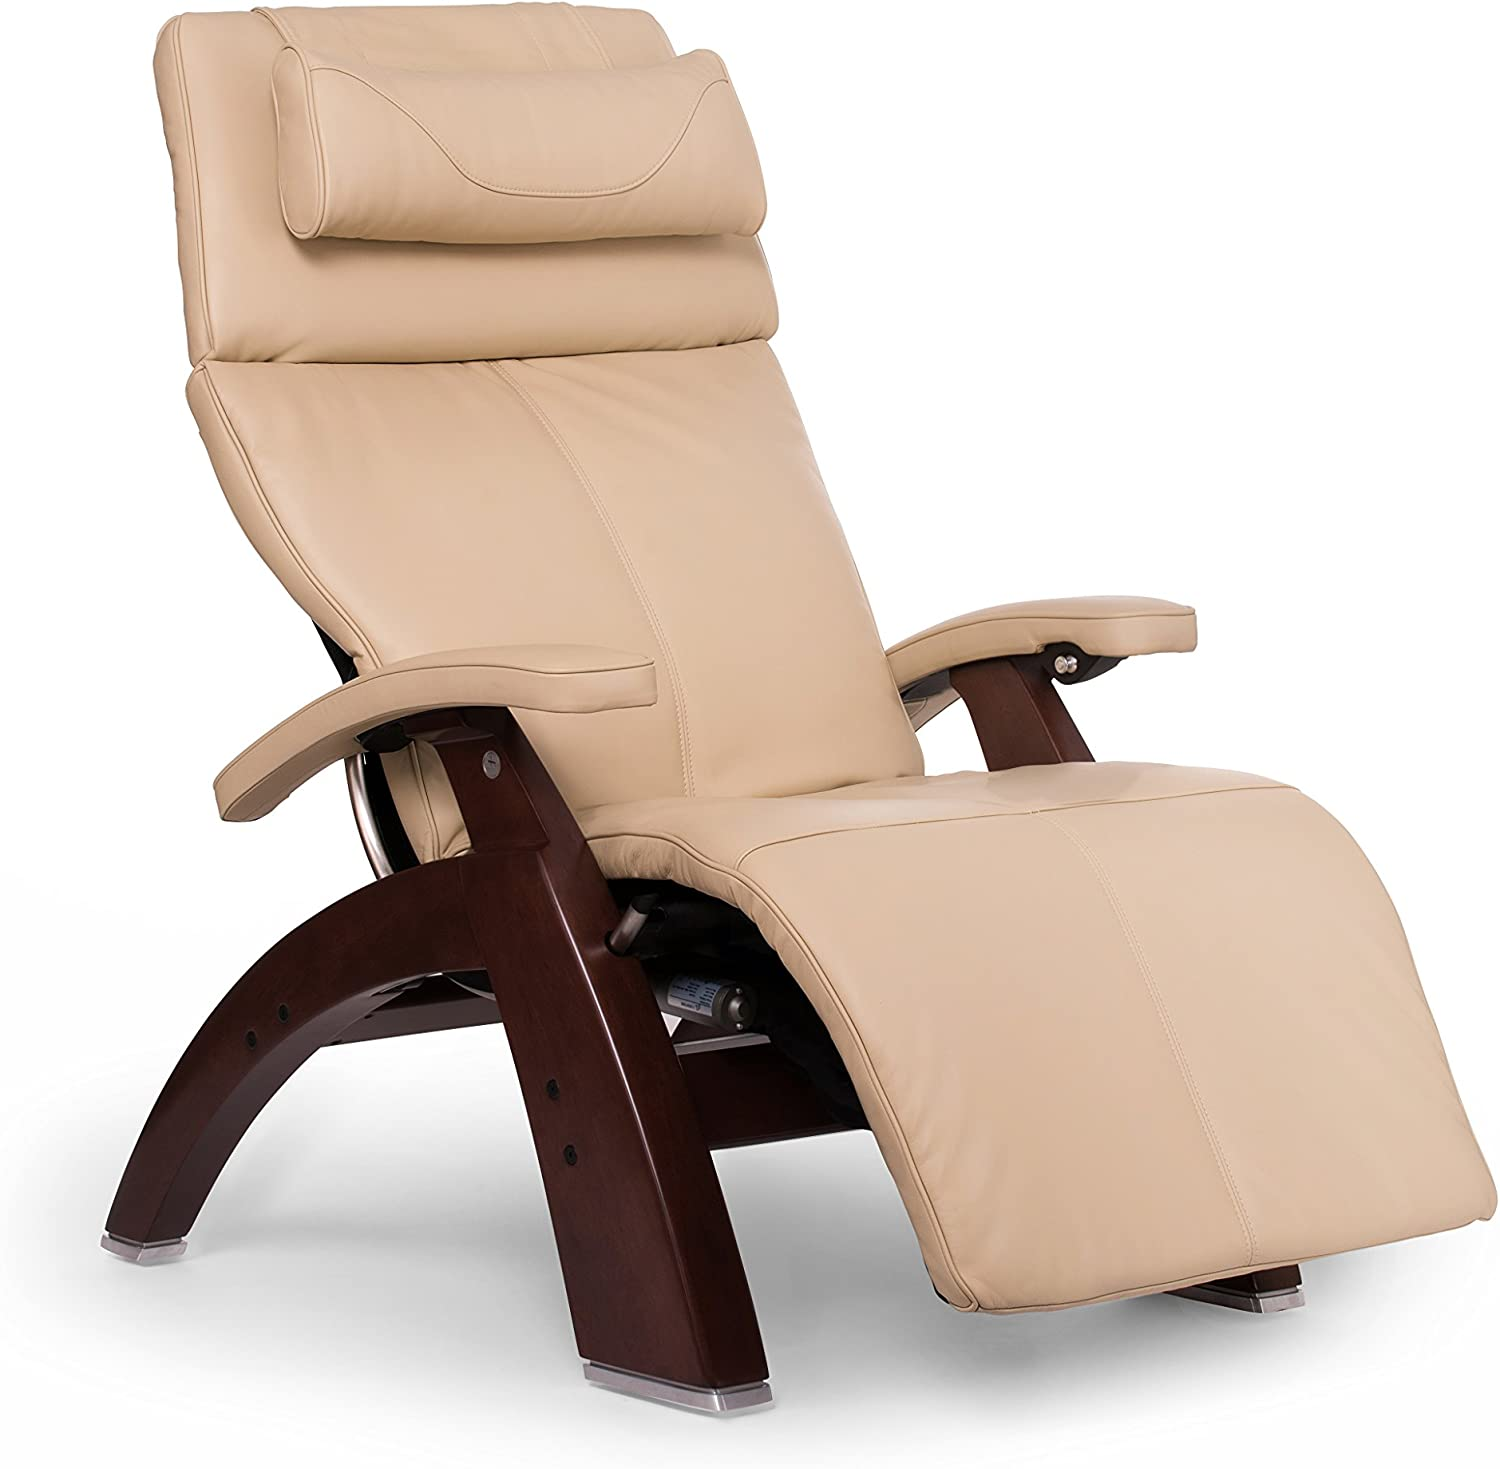 "Perfect Chair ""PC-610 Omni-Motion Classic"" Premium Full Grain Leather Zero Gravity Recliner, Ivory"